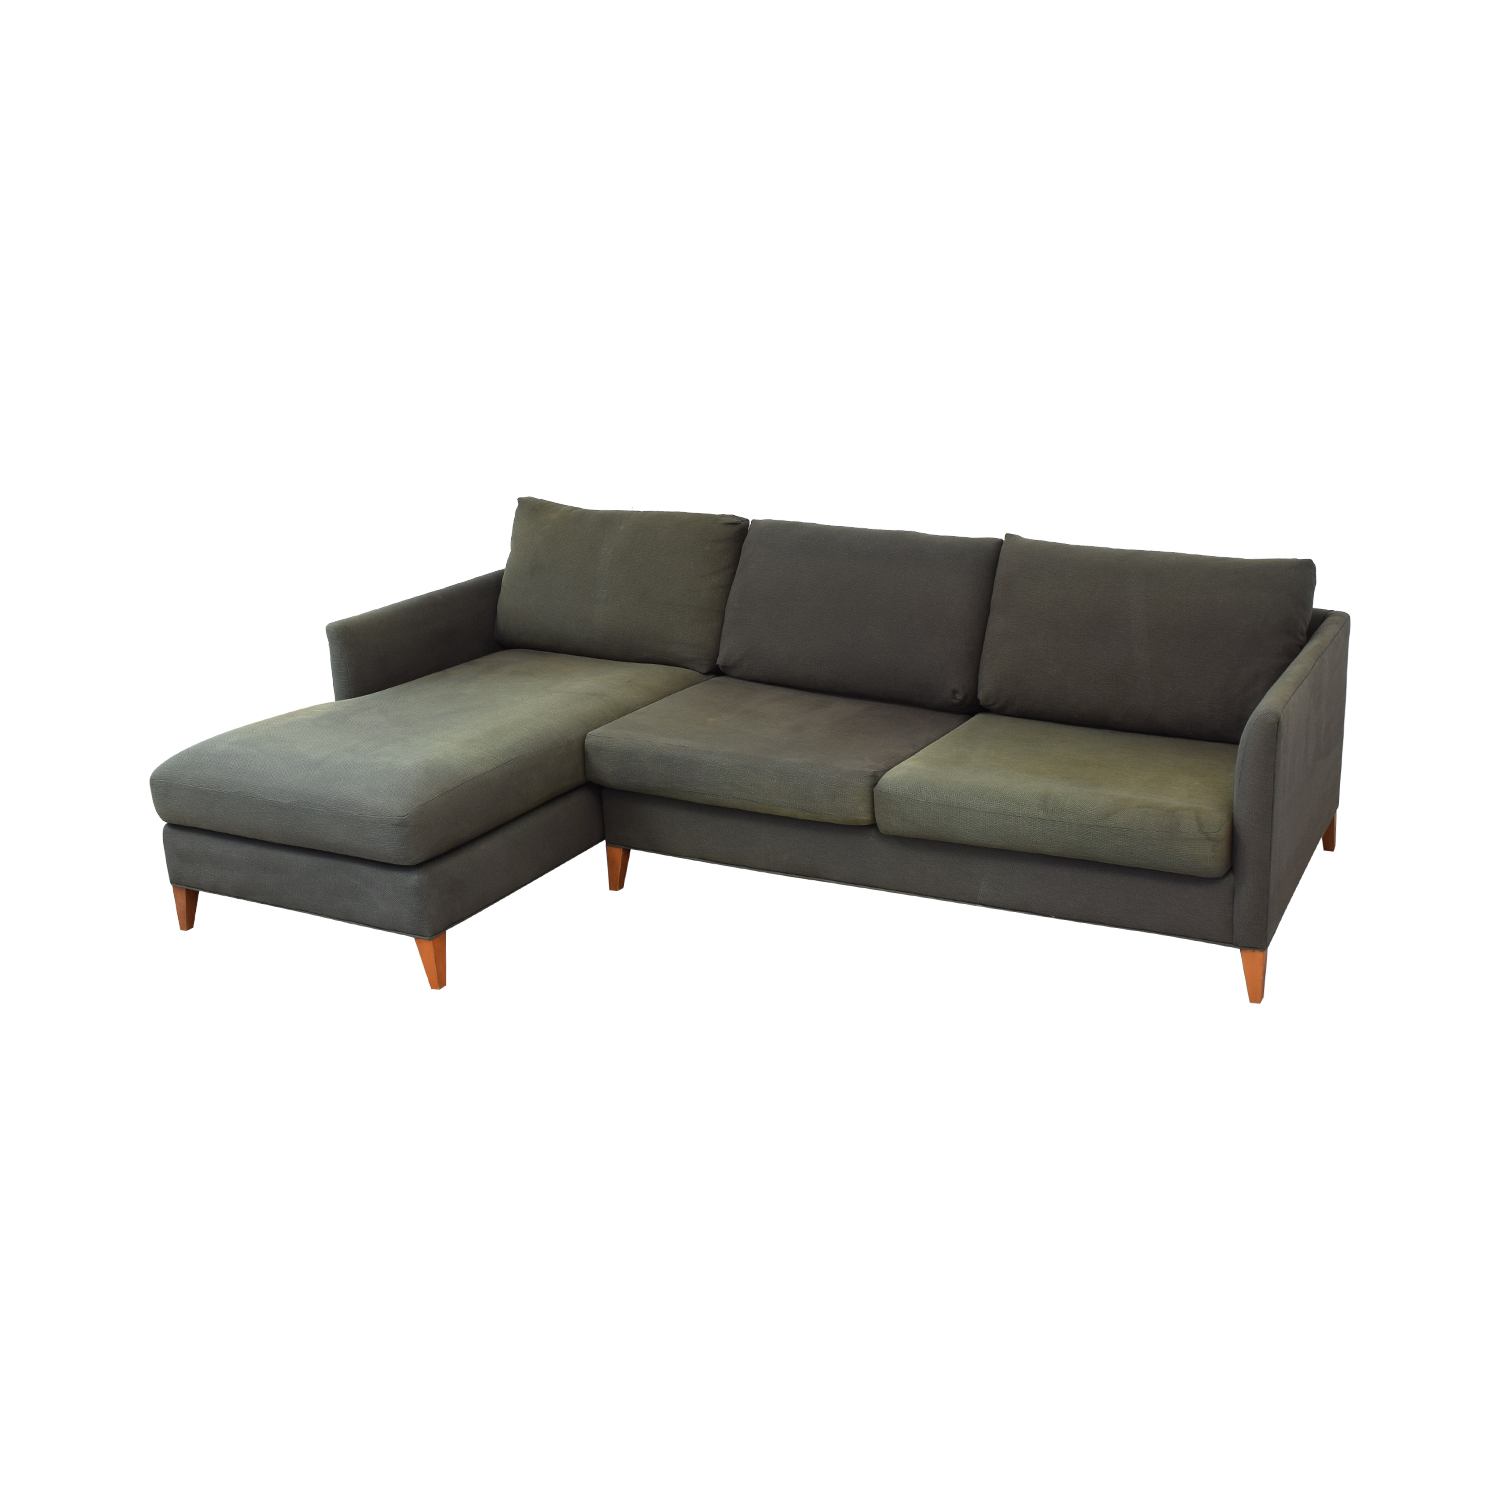 Crate & Barrel Crate & Barrel Two Piece Sectional with Chaise for sale